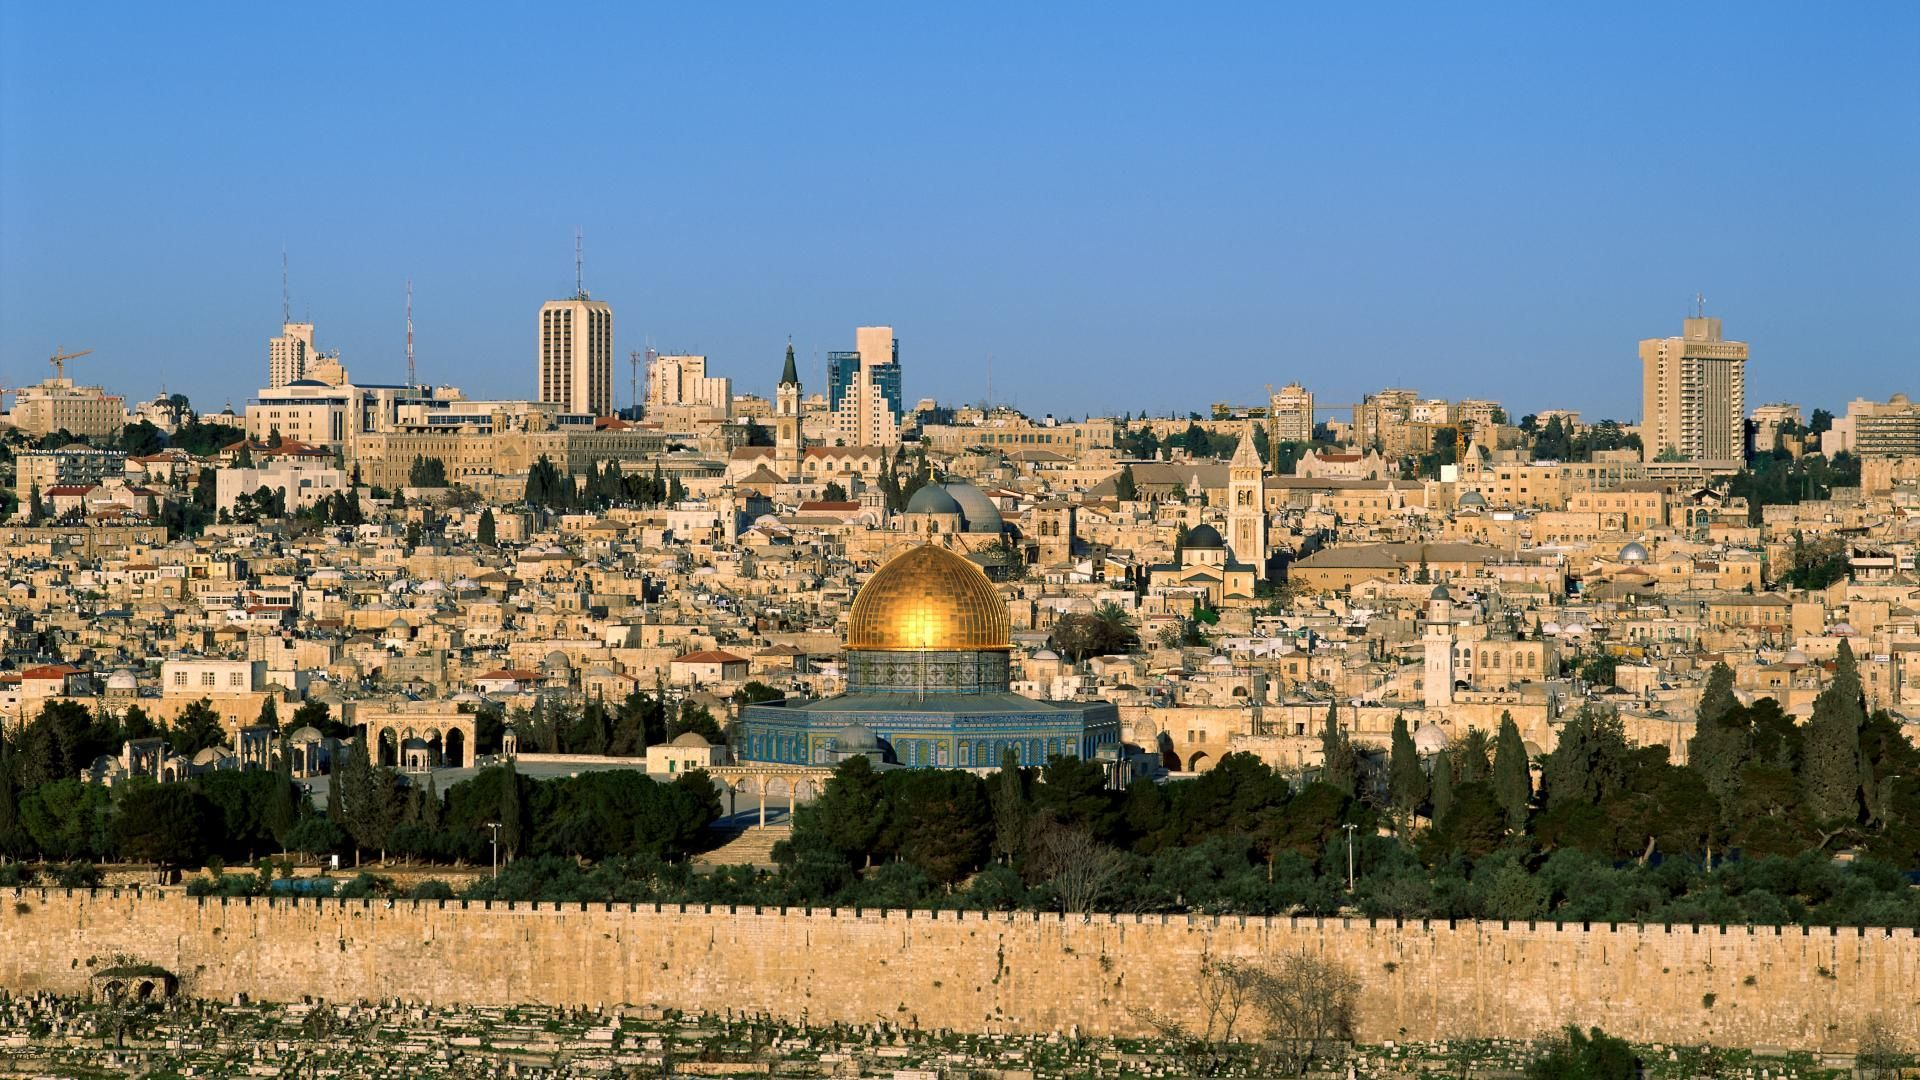 1920x1080 40+] Israel HD Wallpapers on WallpaperSafari